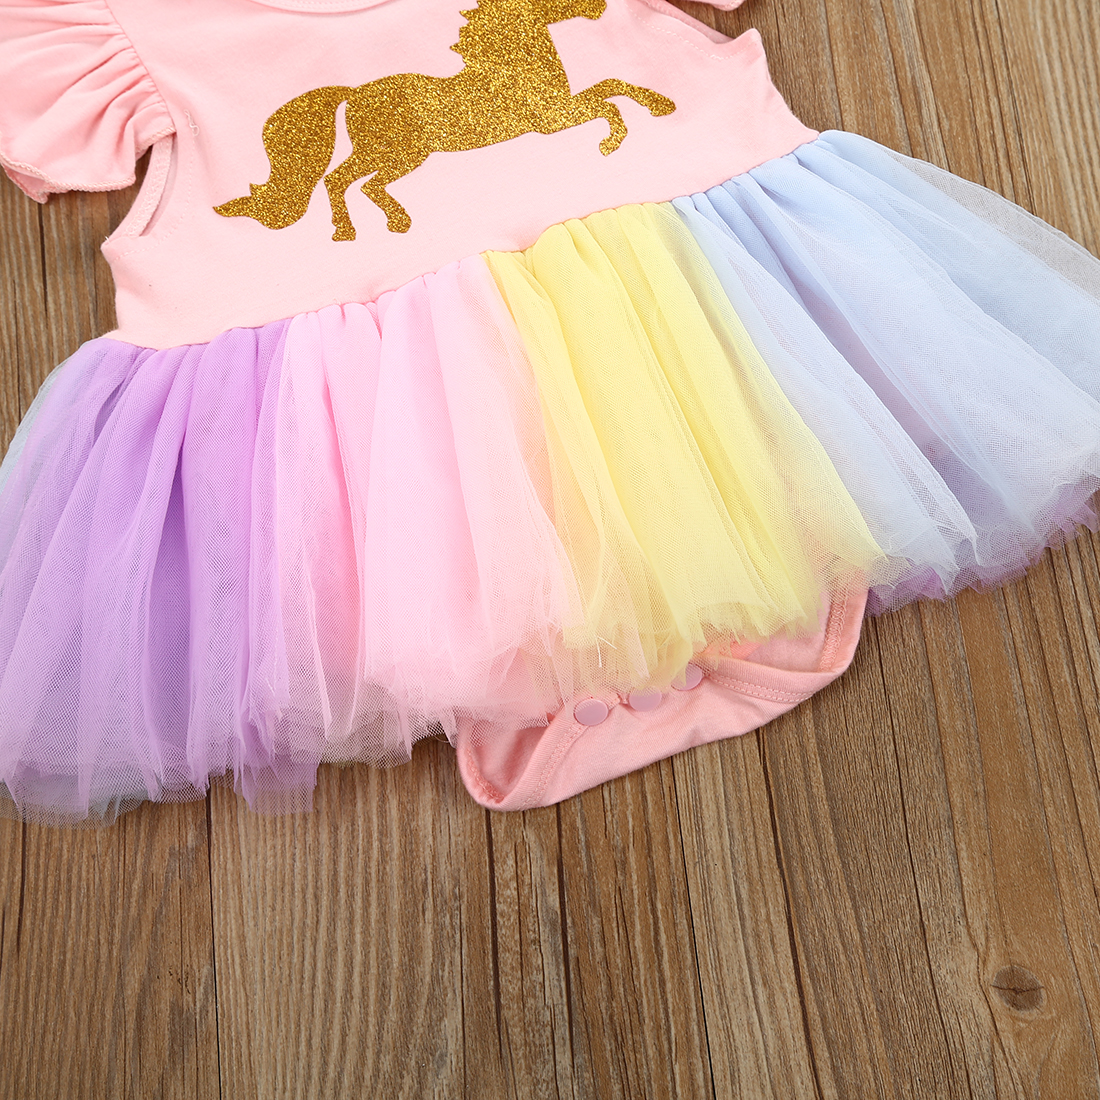 25313611360c0 US $4.66 14% OFF 2018 Hot Gold Unicorn Colorful Mesh Newborn Baby Girls  Tutu Lace Mini Dress Romper Outfits-in Dresses from Mother & Kids on ...